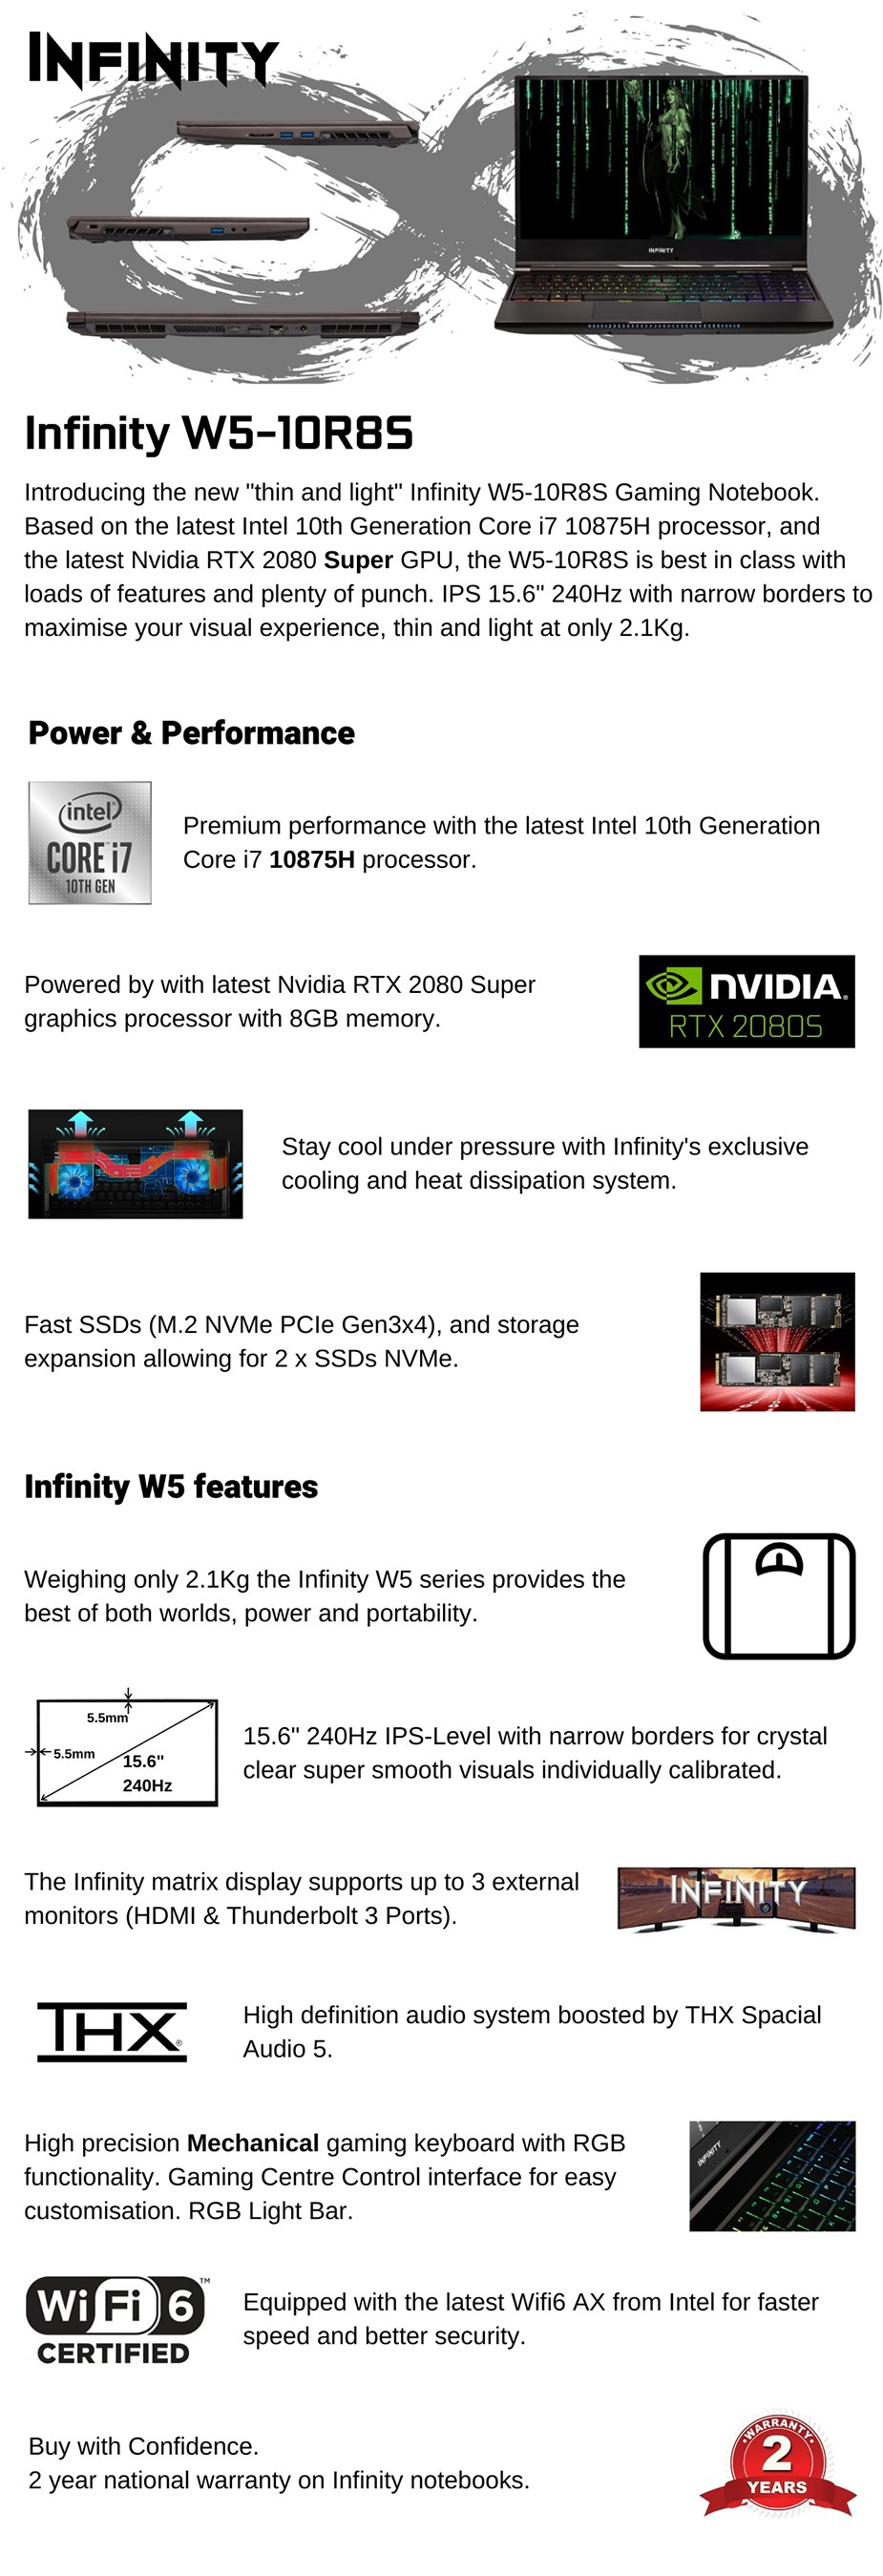 "Infinity W5-10R8S-899 15.6"" 240Hz Gaming Laptop i7-10875H 16GB 1TB 2080S W10H - Overview 1"